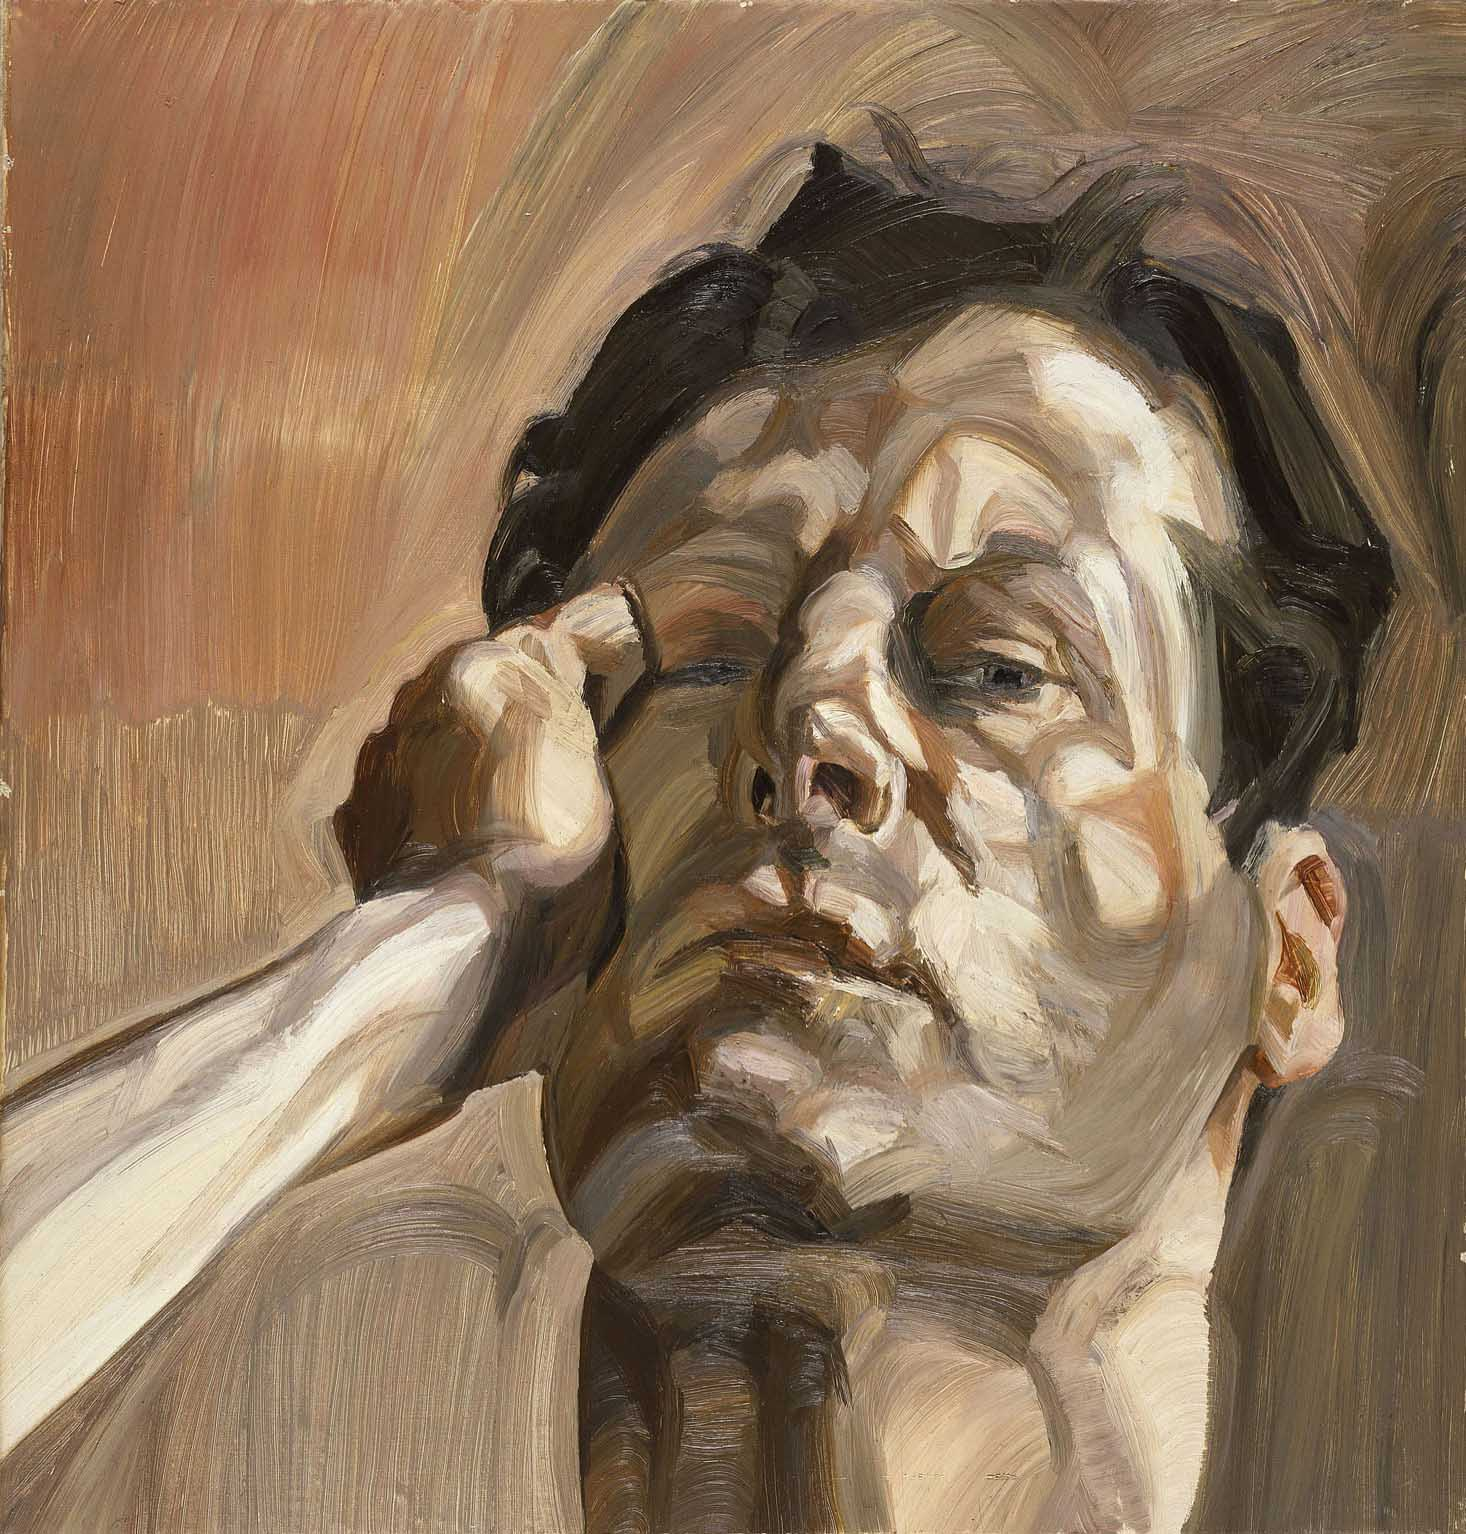 Lucien Freud: Man's Head (Self-Portrait, 1963)